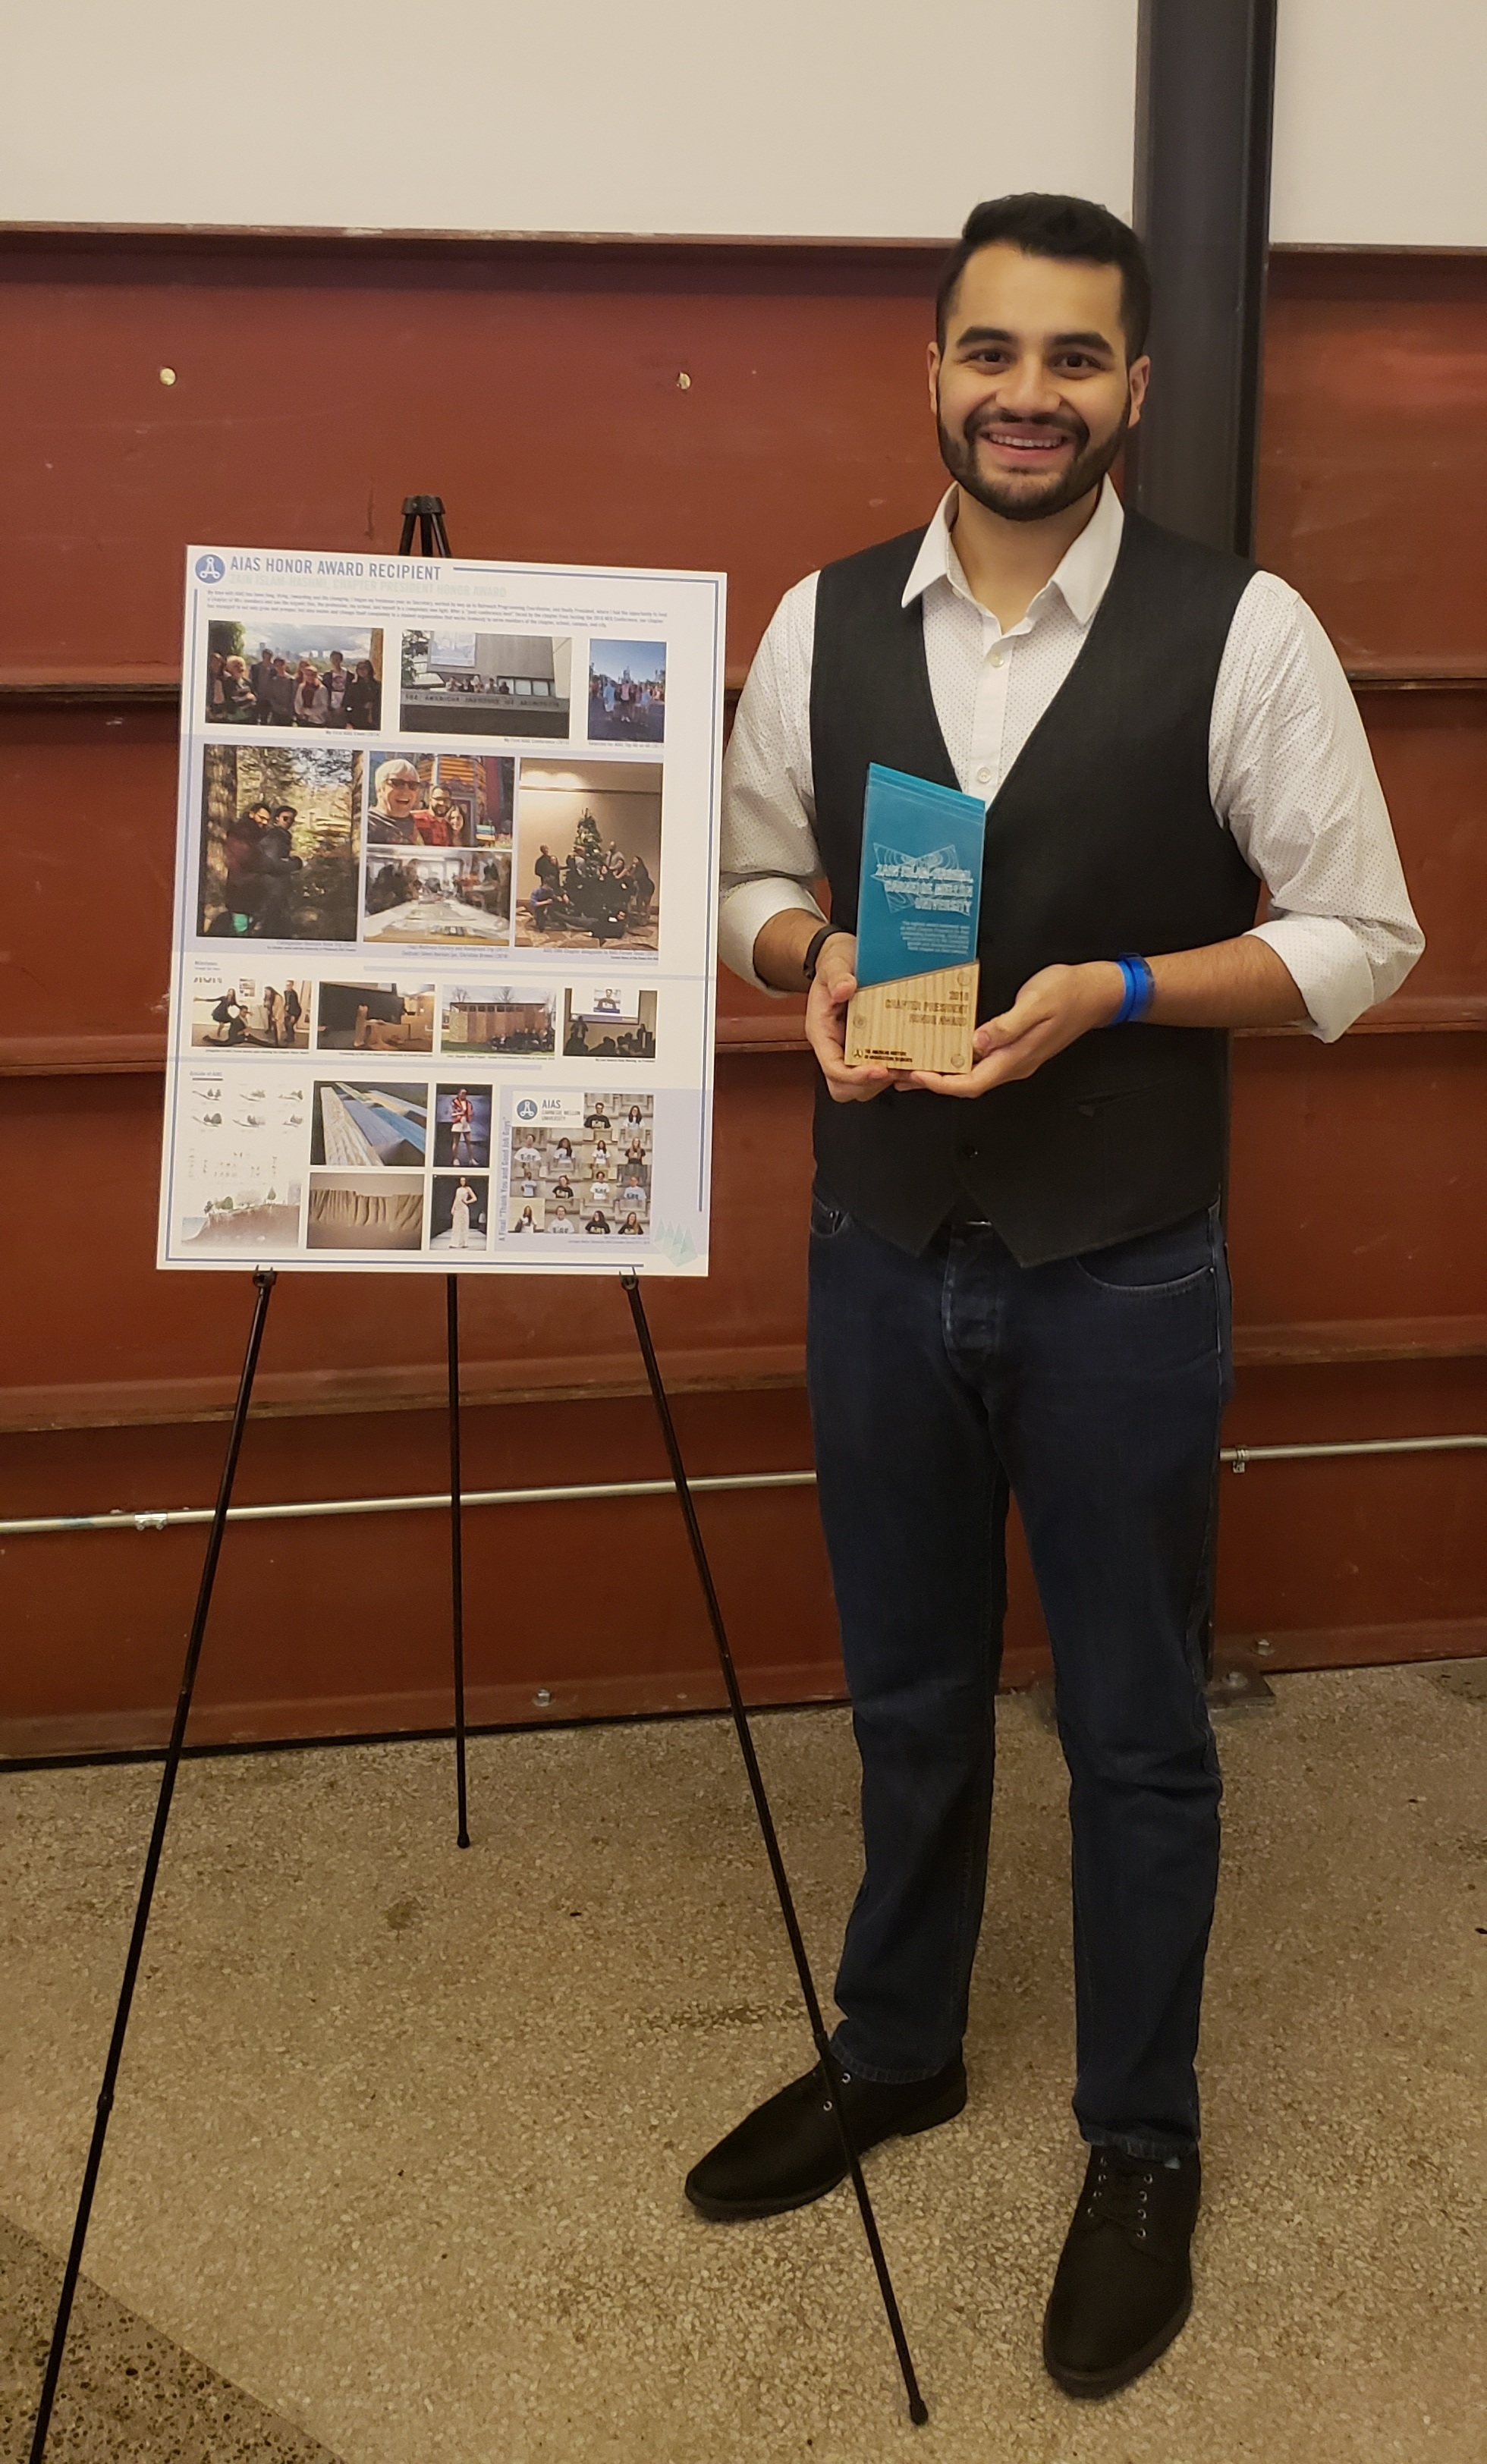 Former chapter president Zain Islam-Hashmi was named the winner of the 2018 Chapter President Honor Award at Forum 2018 in Seattle.